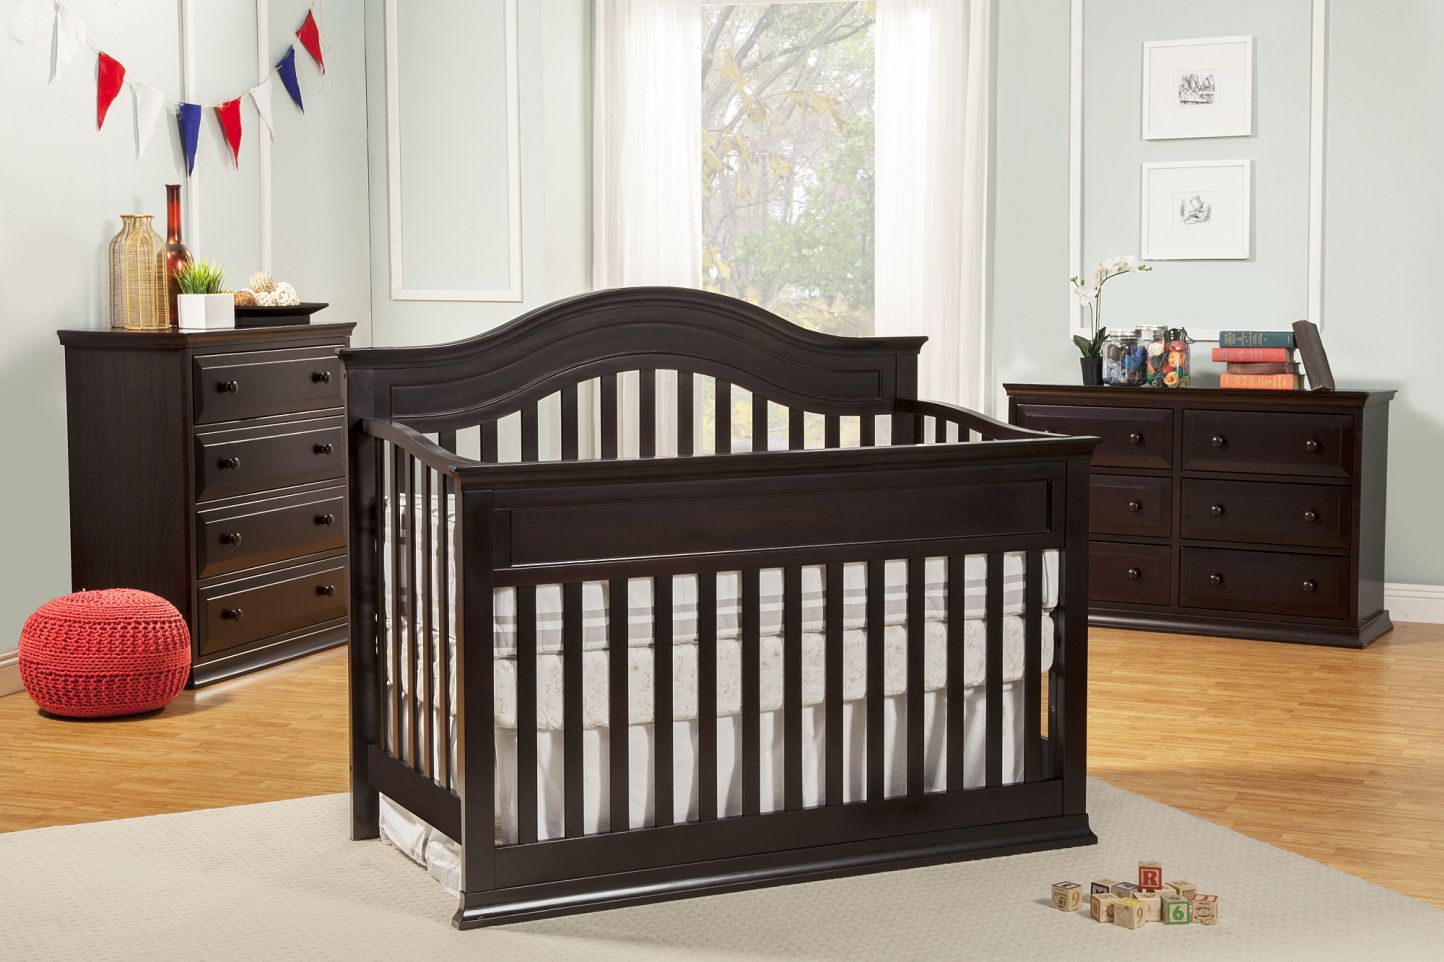 Davinci Baby Furniture Reviews   Neutral Interior Paint Colors Check More  At Http://